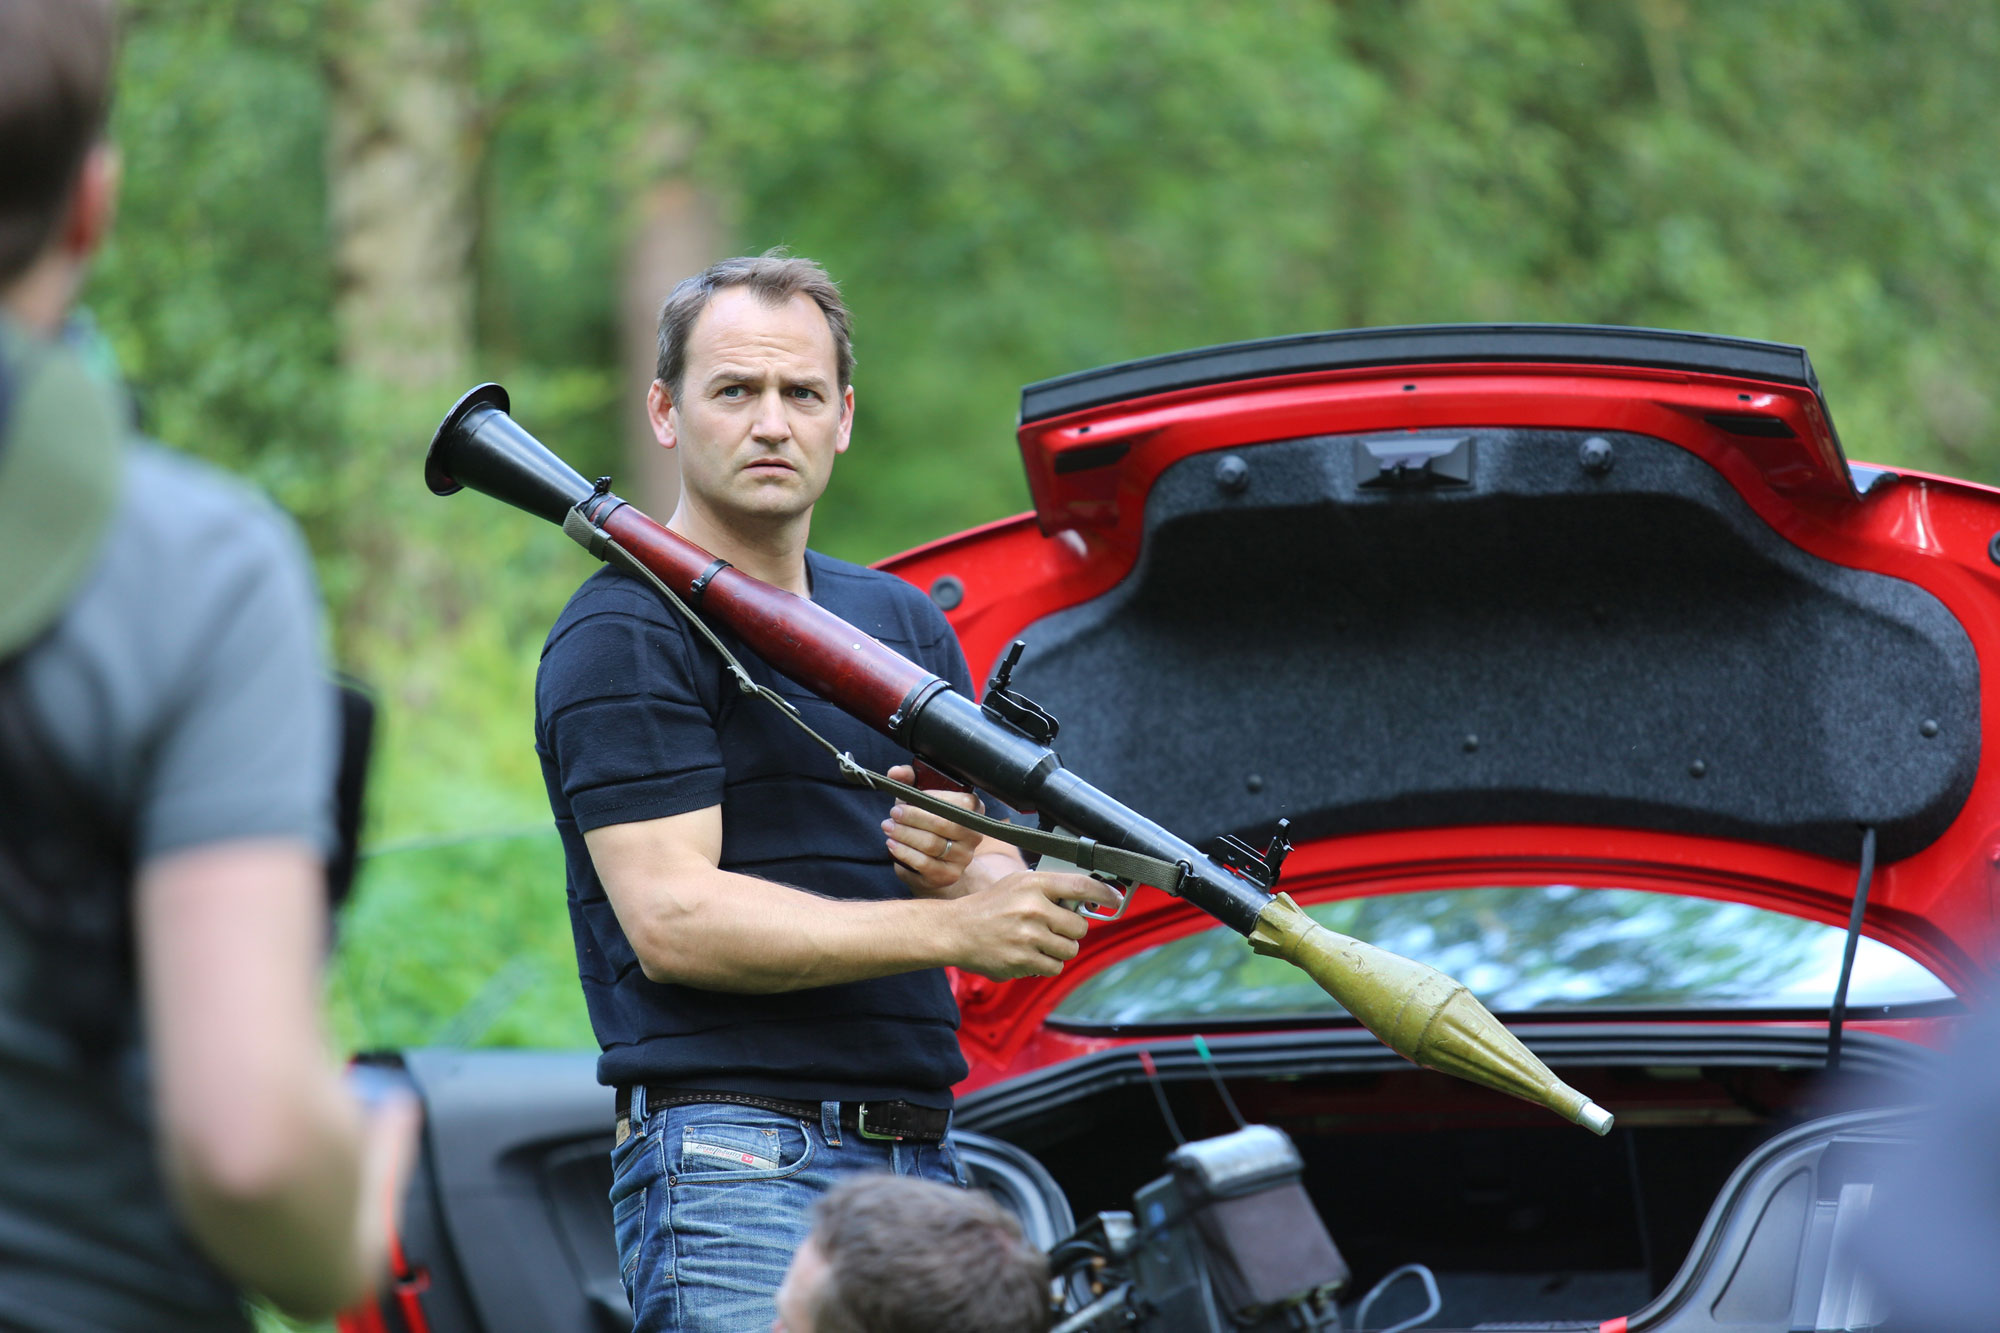 Ben Collins - Stunt Driver, Motor Racing Champion, And A Top Gear Stig 8